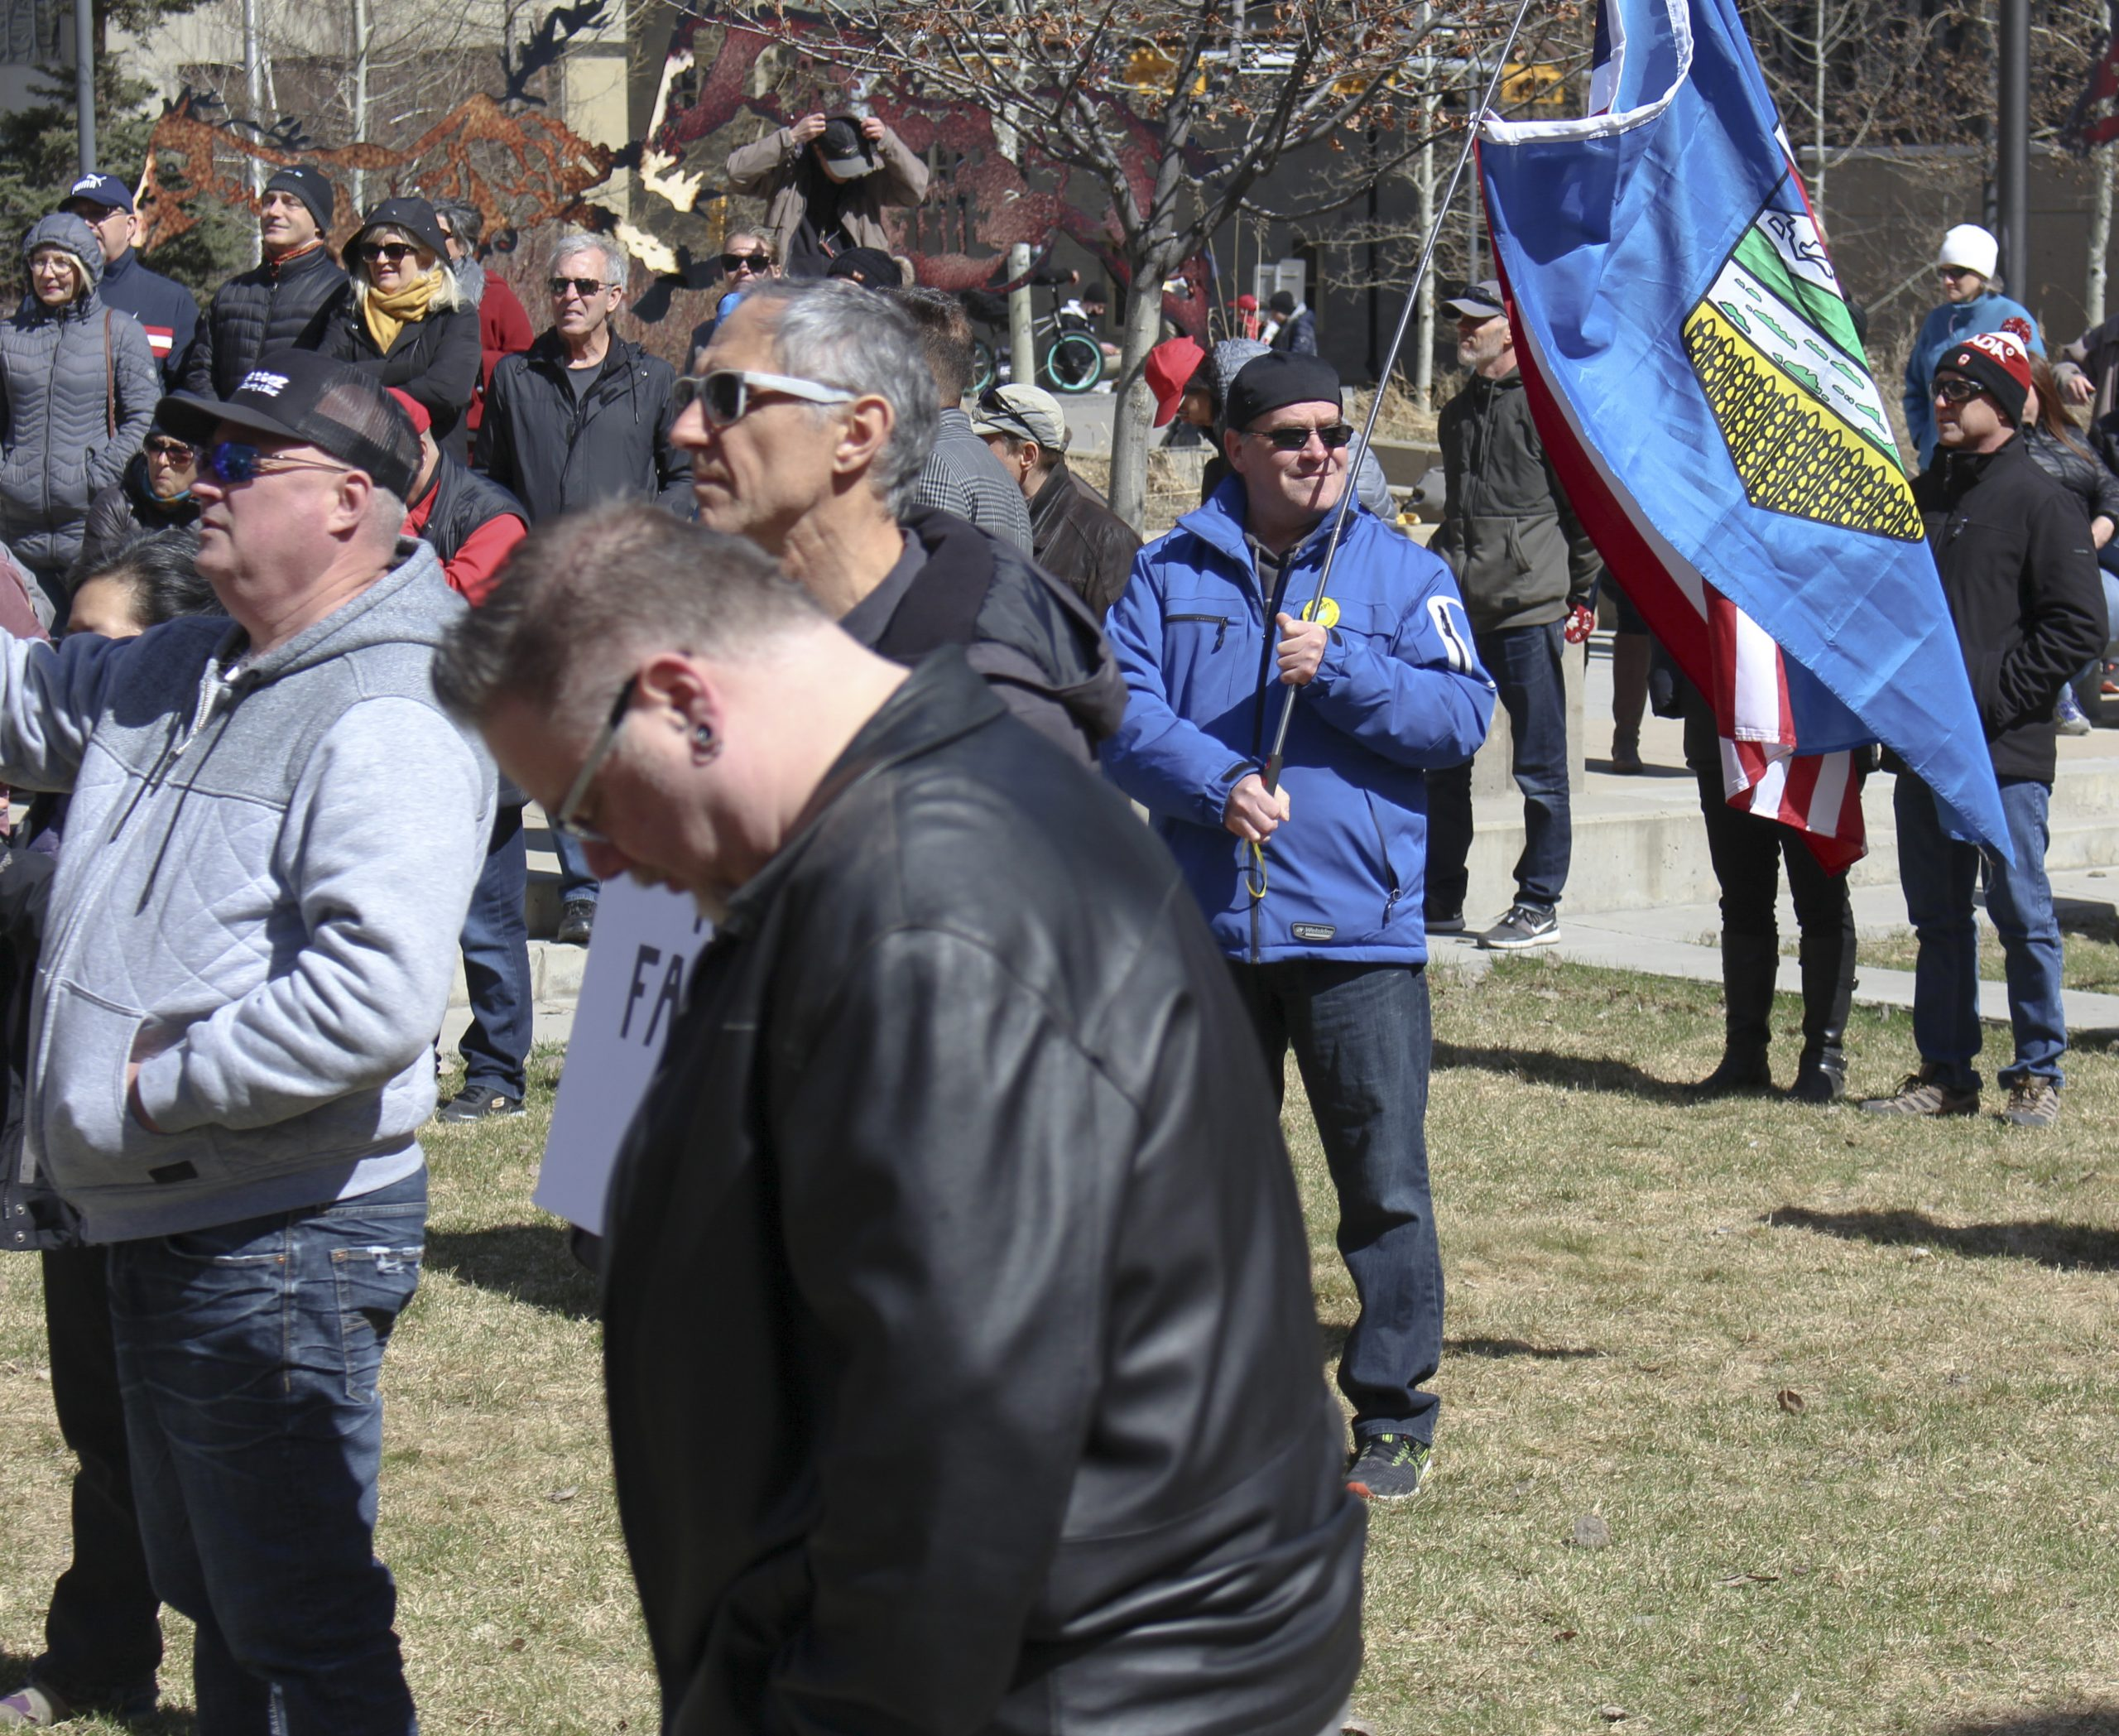 A man, amid a crowd, waves an Alberta and U.S. flag joined together while in attendance of the ÒSave Small BusinessÓ rally at Courthouse Park in downtown Calgary on April 11, 2021. A couple hundred people attended the event, hosted by Calgary Freedom Central, as a sign of support for the businesses that are facing hardships as a result of COVID-19 and the provincial lockdown, but also to express disdain for mask usage, vaccines, the COVID-19 testing method, and compliance with the government and the enforcement of said closures.(Photo by Alejandro Melgar/SAIT)